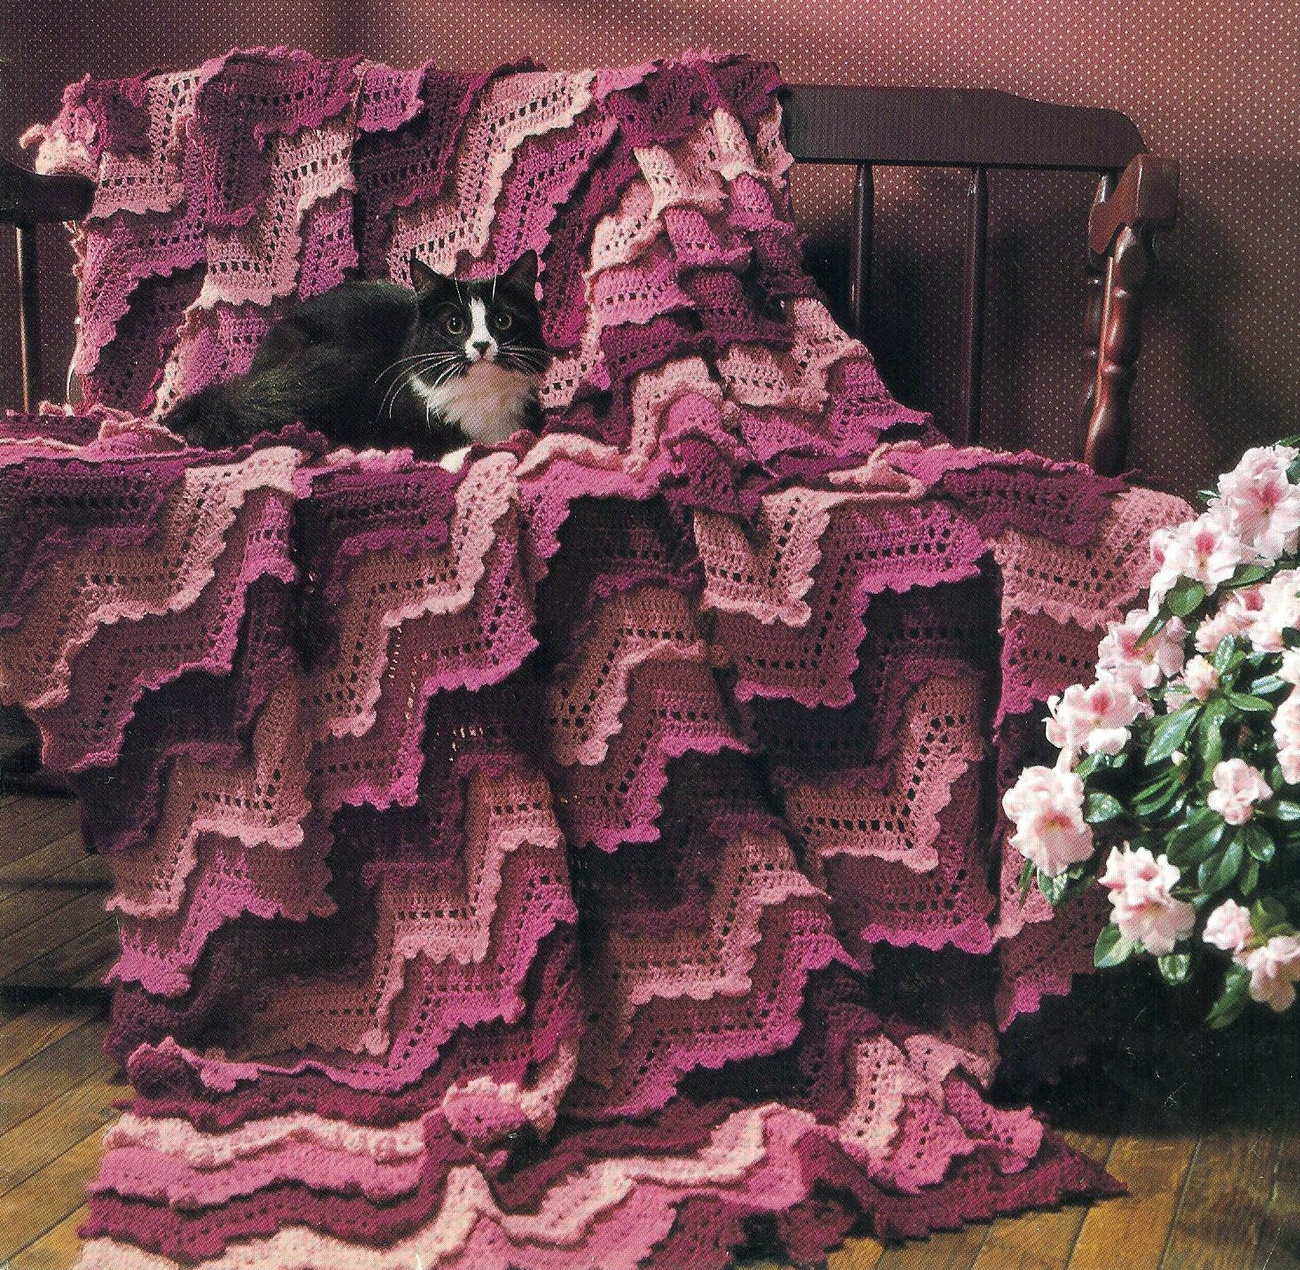 VICTORIAN RUFFLED RIPPLE AFGHAN CROCHET PATTERN~UNIQUE